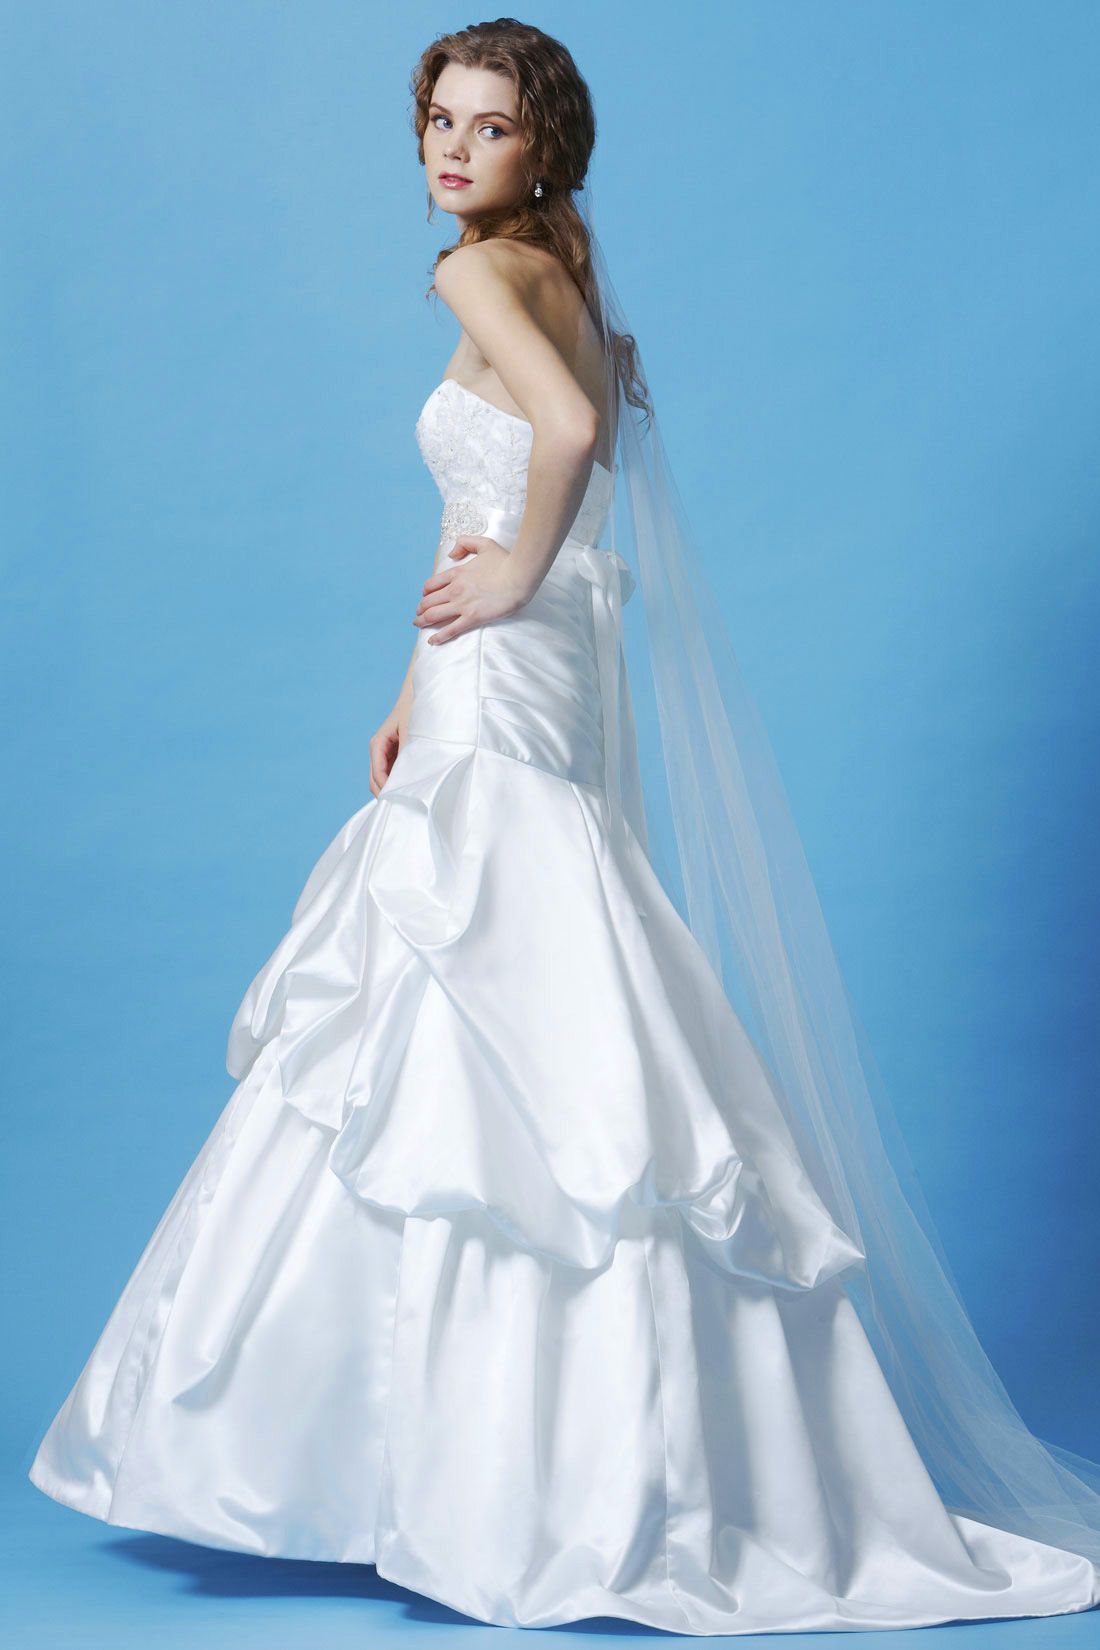 Eden bridal bridal designers and weddings